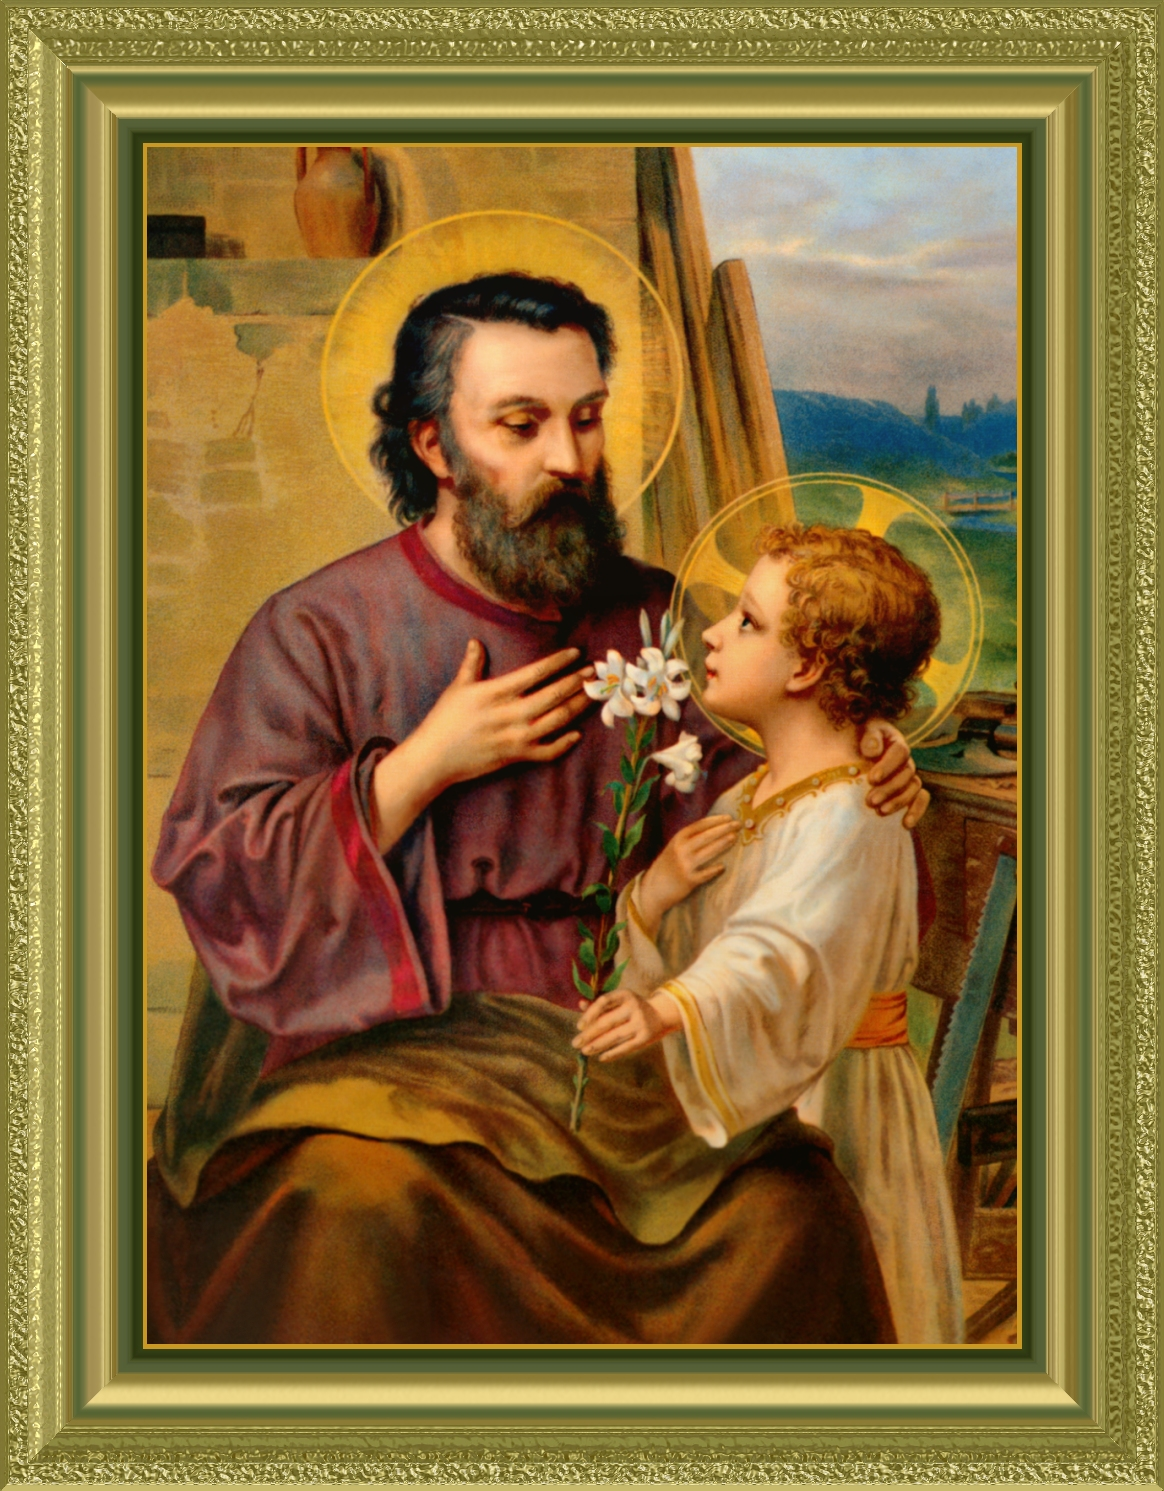 ST. JOSEPH IN ORNATE FRAME